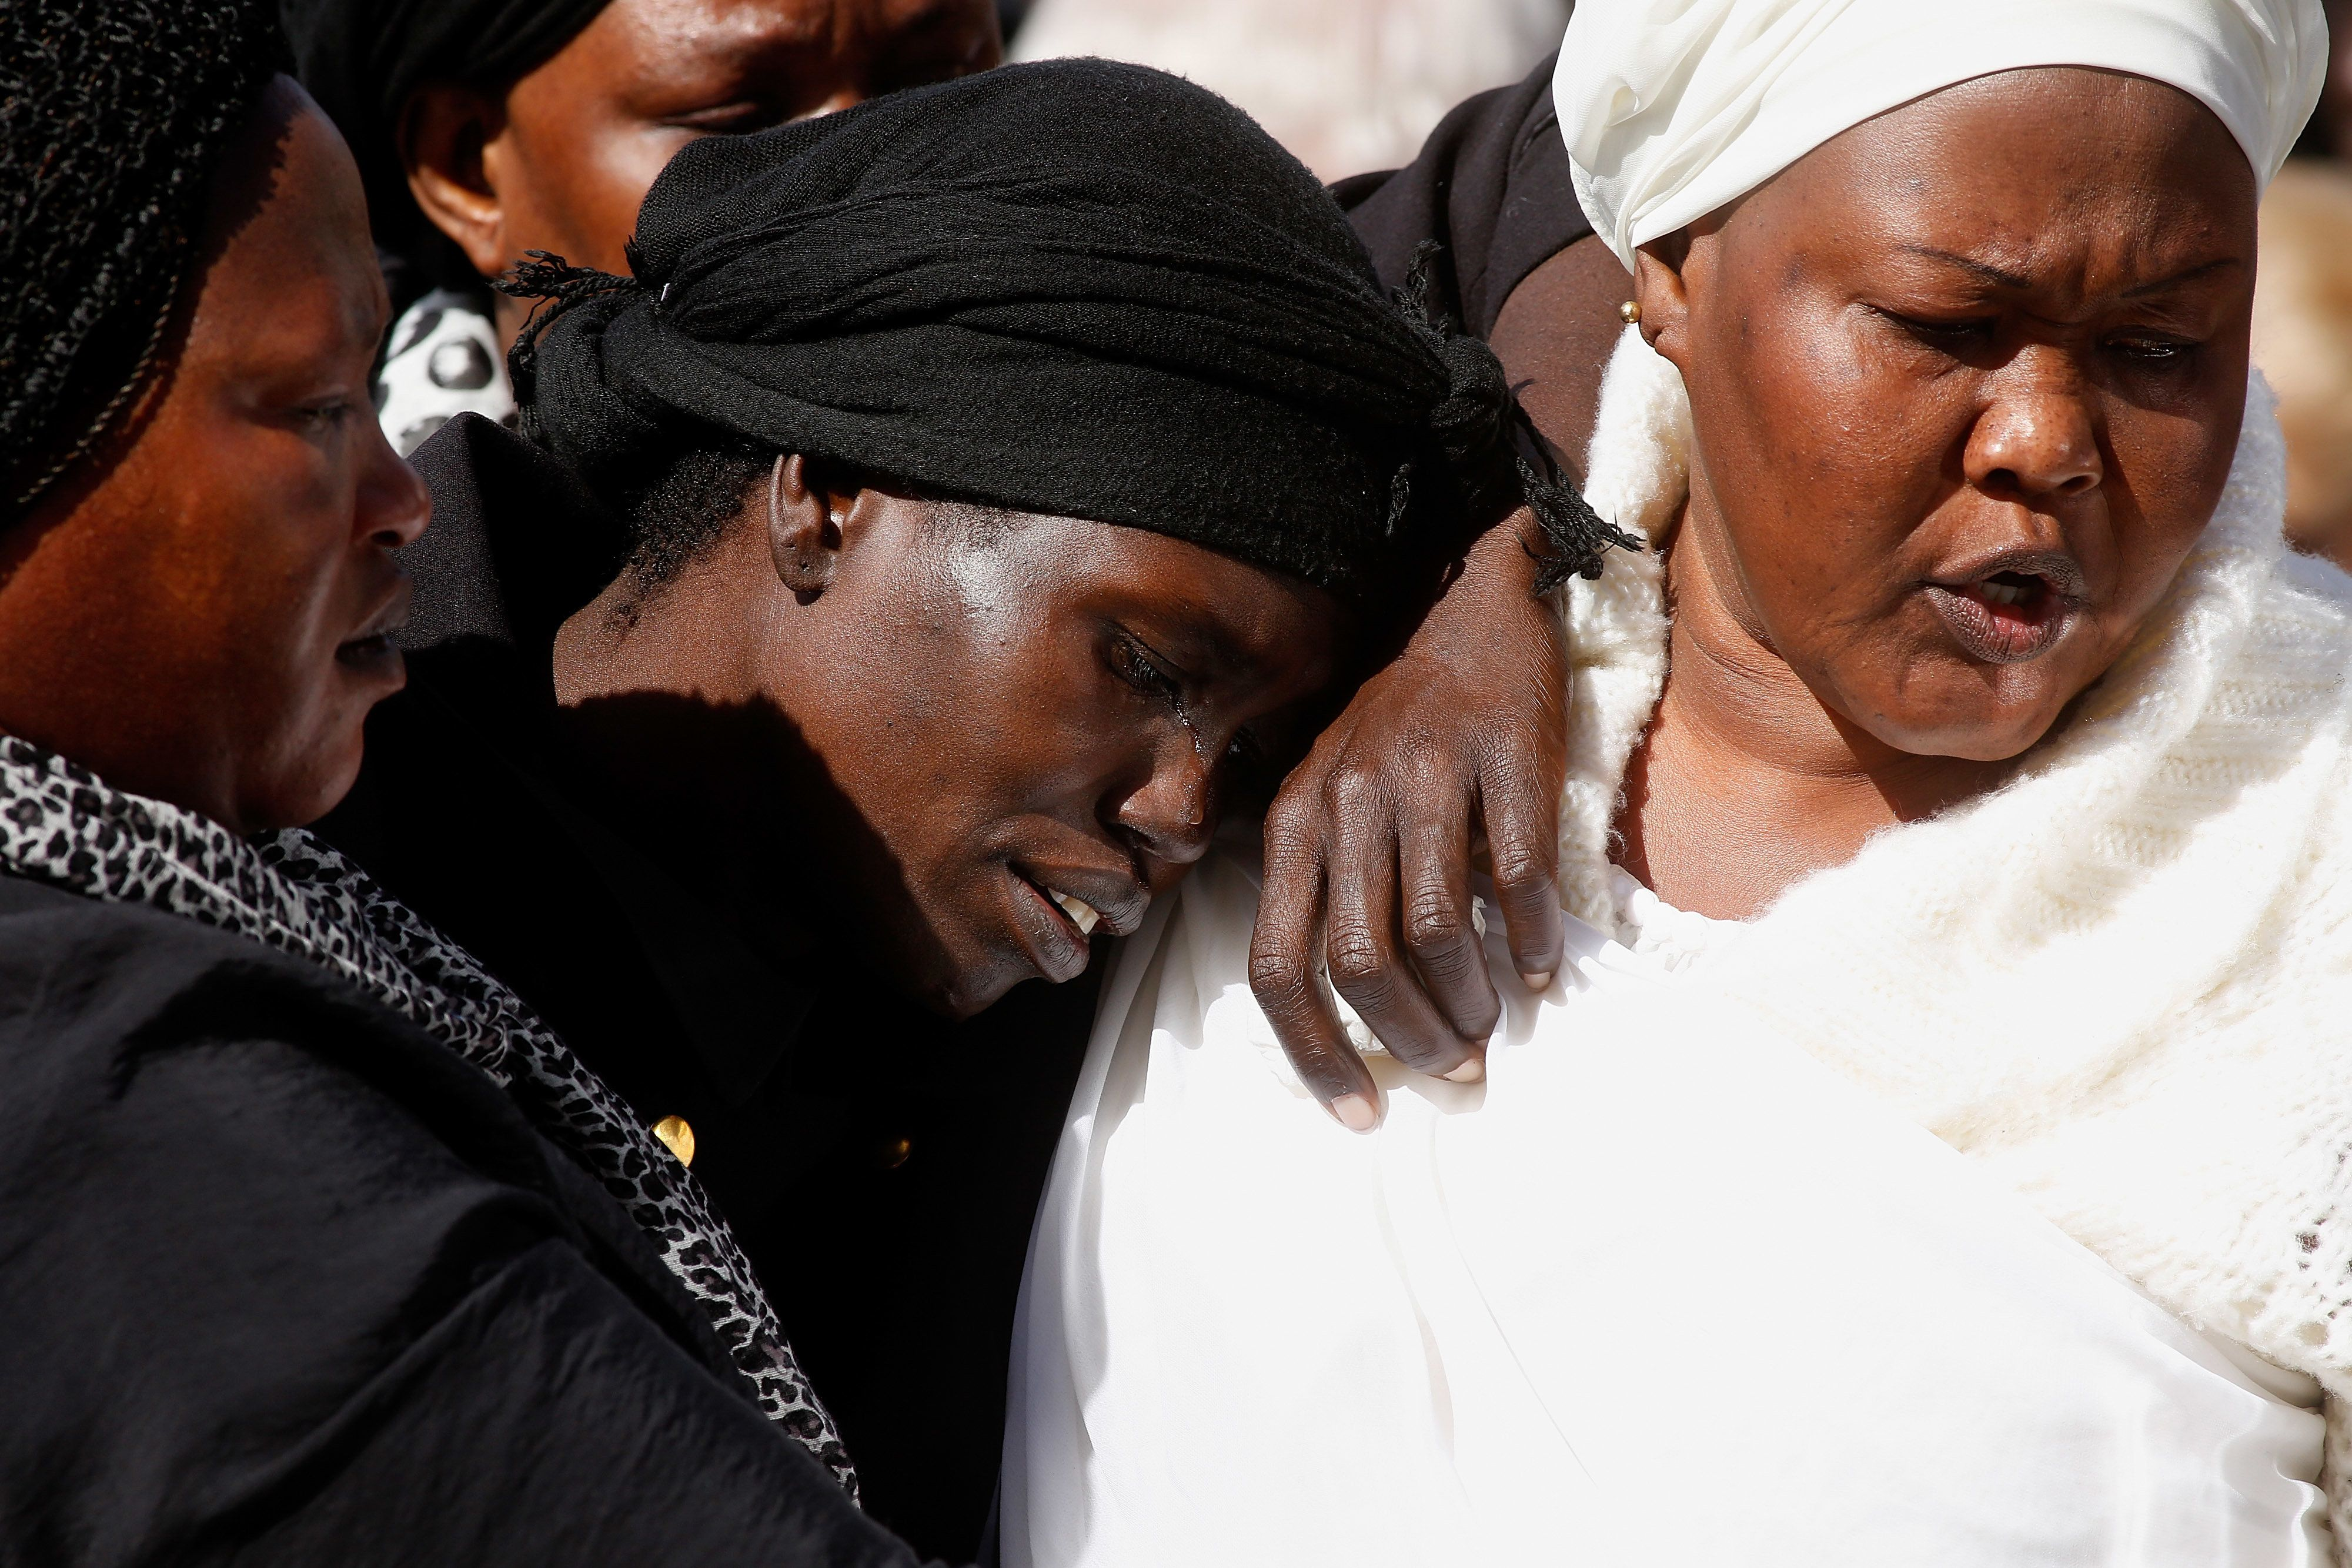 MELBOURNE, AUSTRALIA - APRIL 18:  Akon Guode, 35, at the funeral of her 3 children Bol, Anger and Madit who were tragically killed when she veered off the road at Wyndham Lakes on April 8, 2015, at St Andrews Catholic Church on April 18, 2015 in Melbourne, Australia.  (Photo by Paul Jeffers/Getty Images)